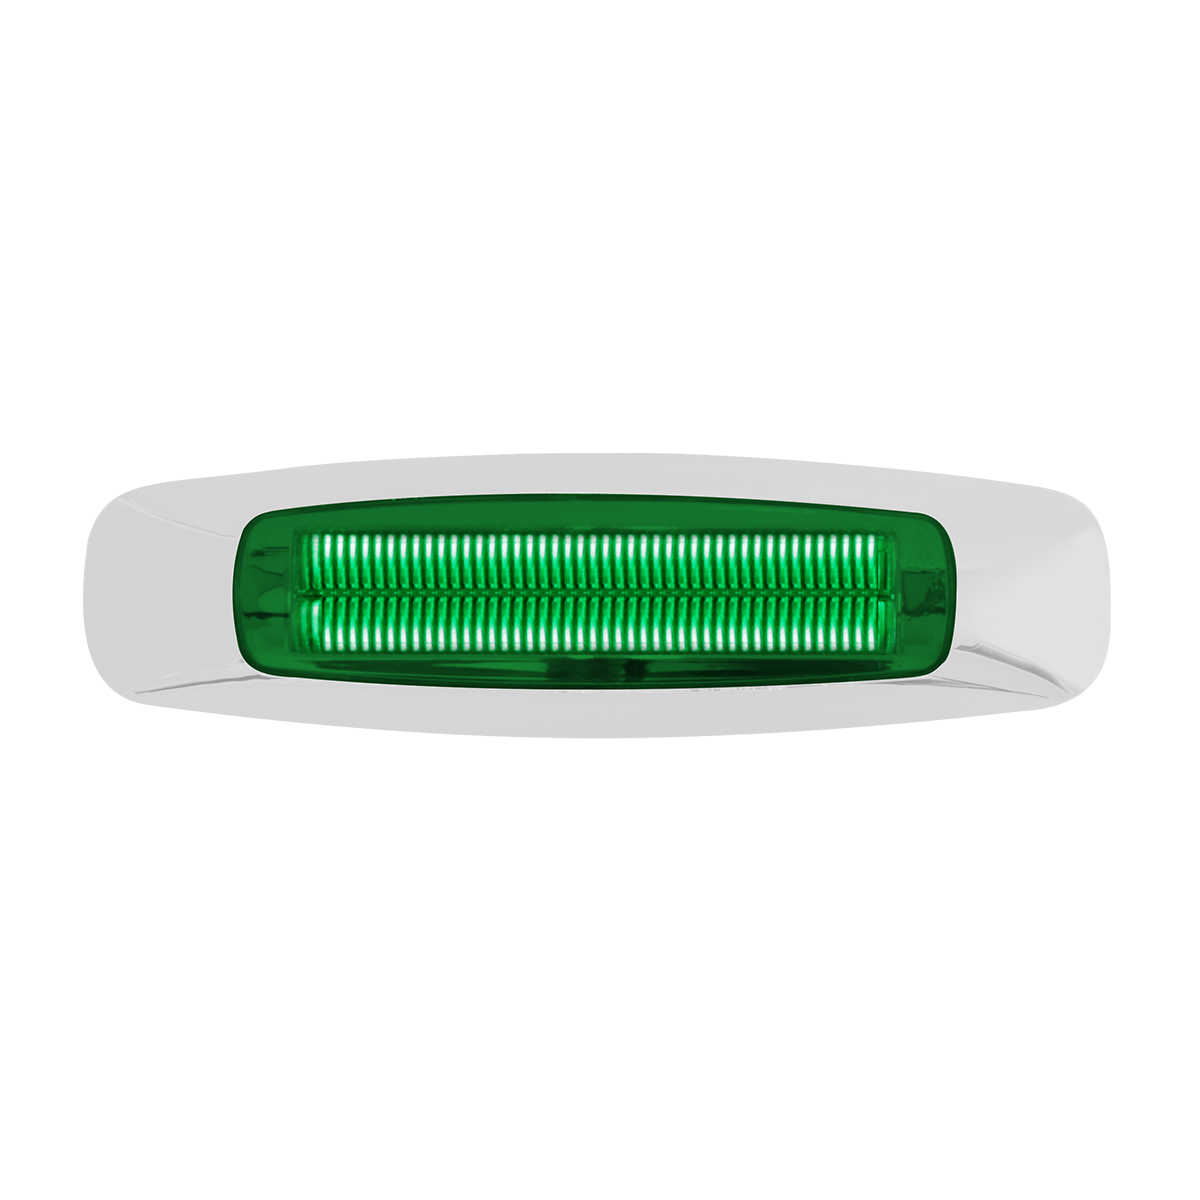 "74846 5-3/4"" Rectangular Prime LED Marker Light in Green/Green"